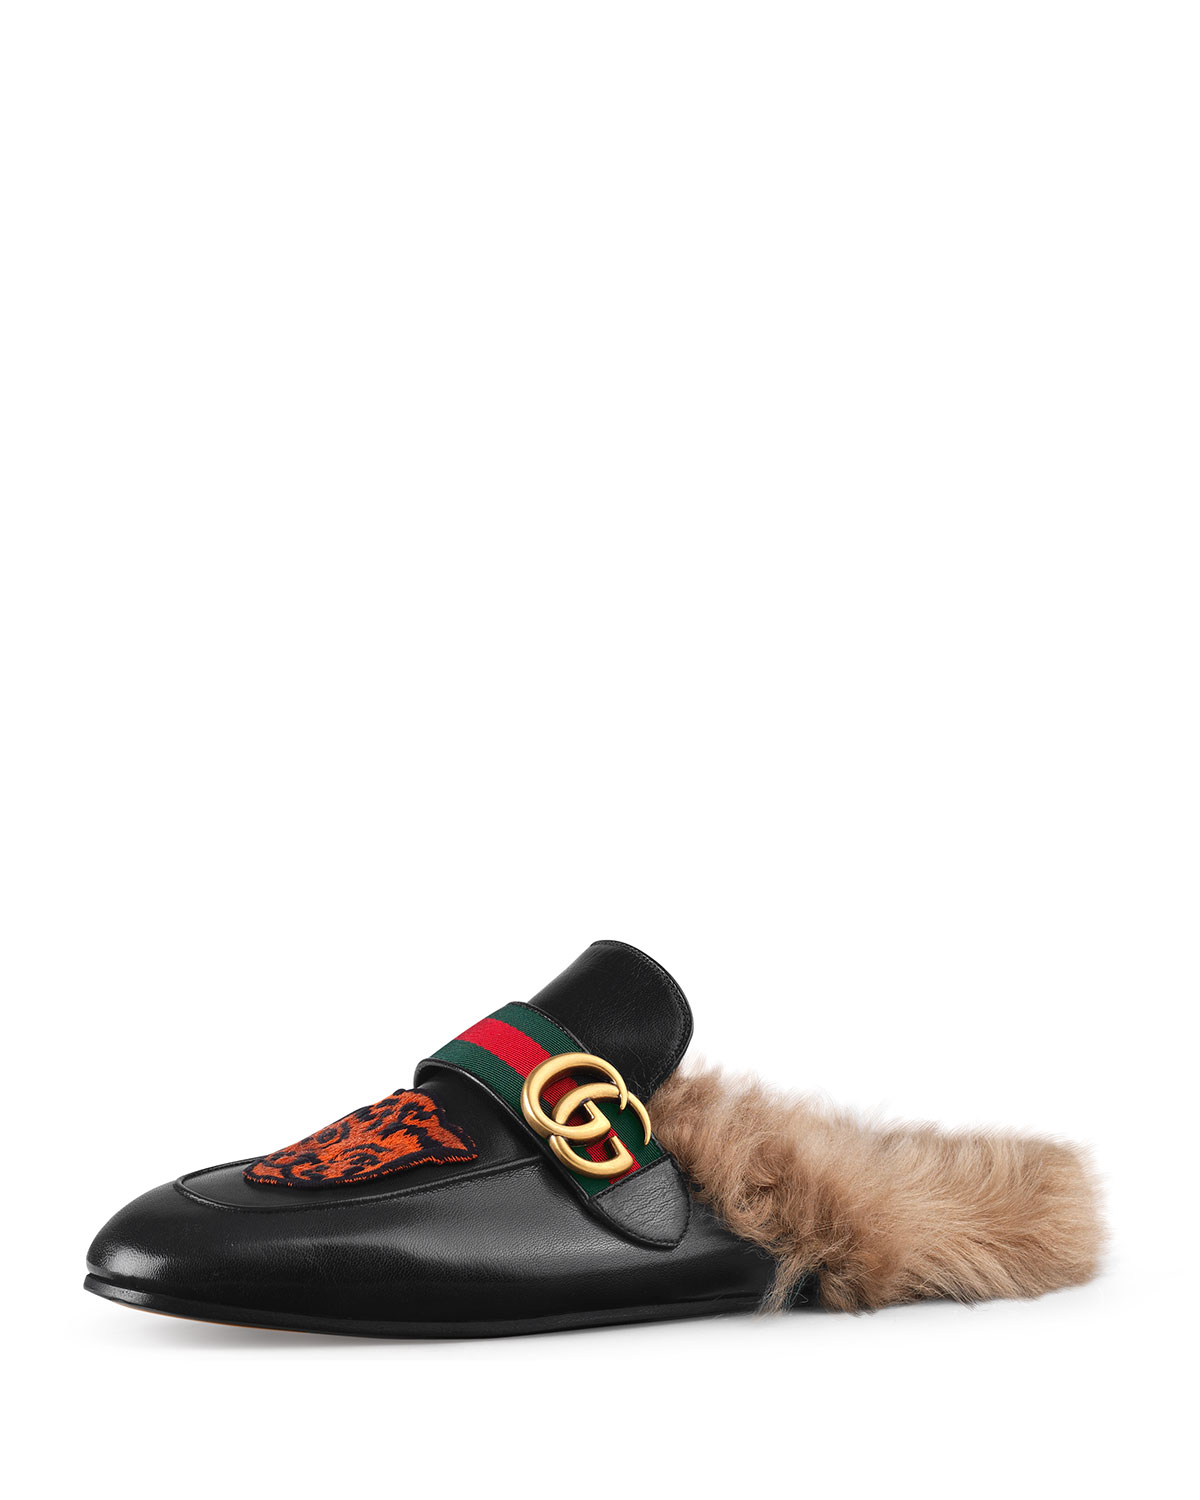 1a669c0de6f Gucci Princetown Embroidered Slipper with Double G